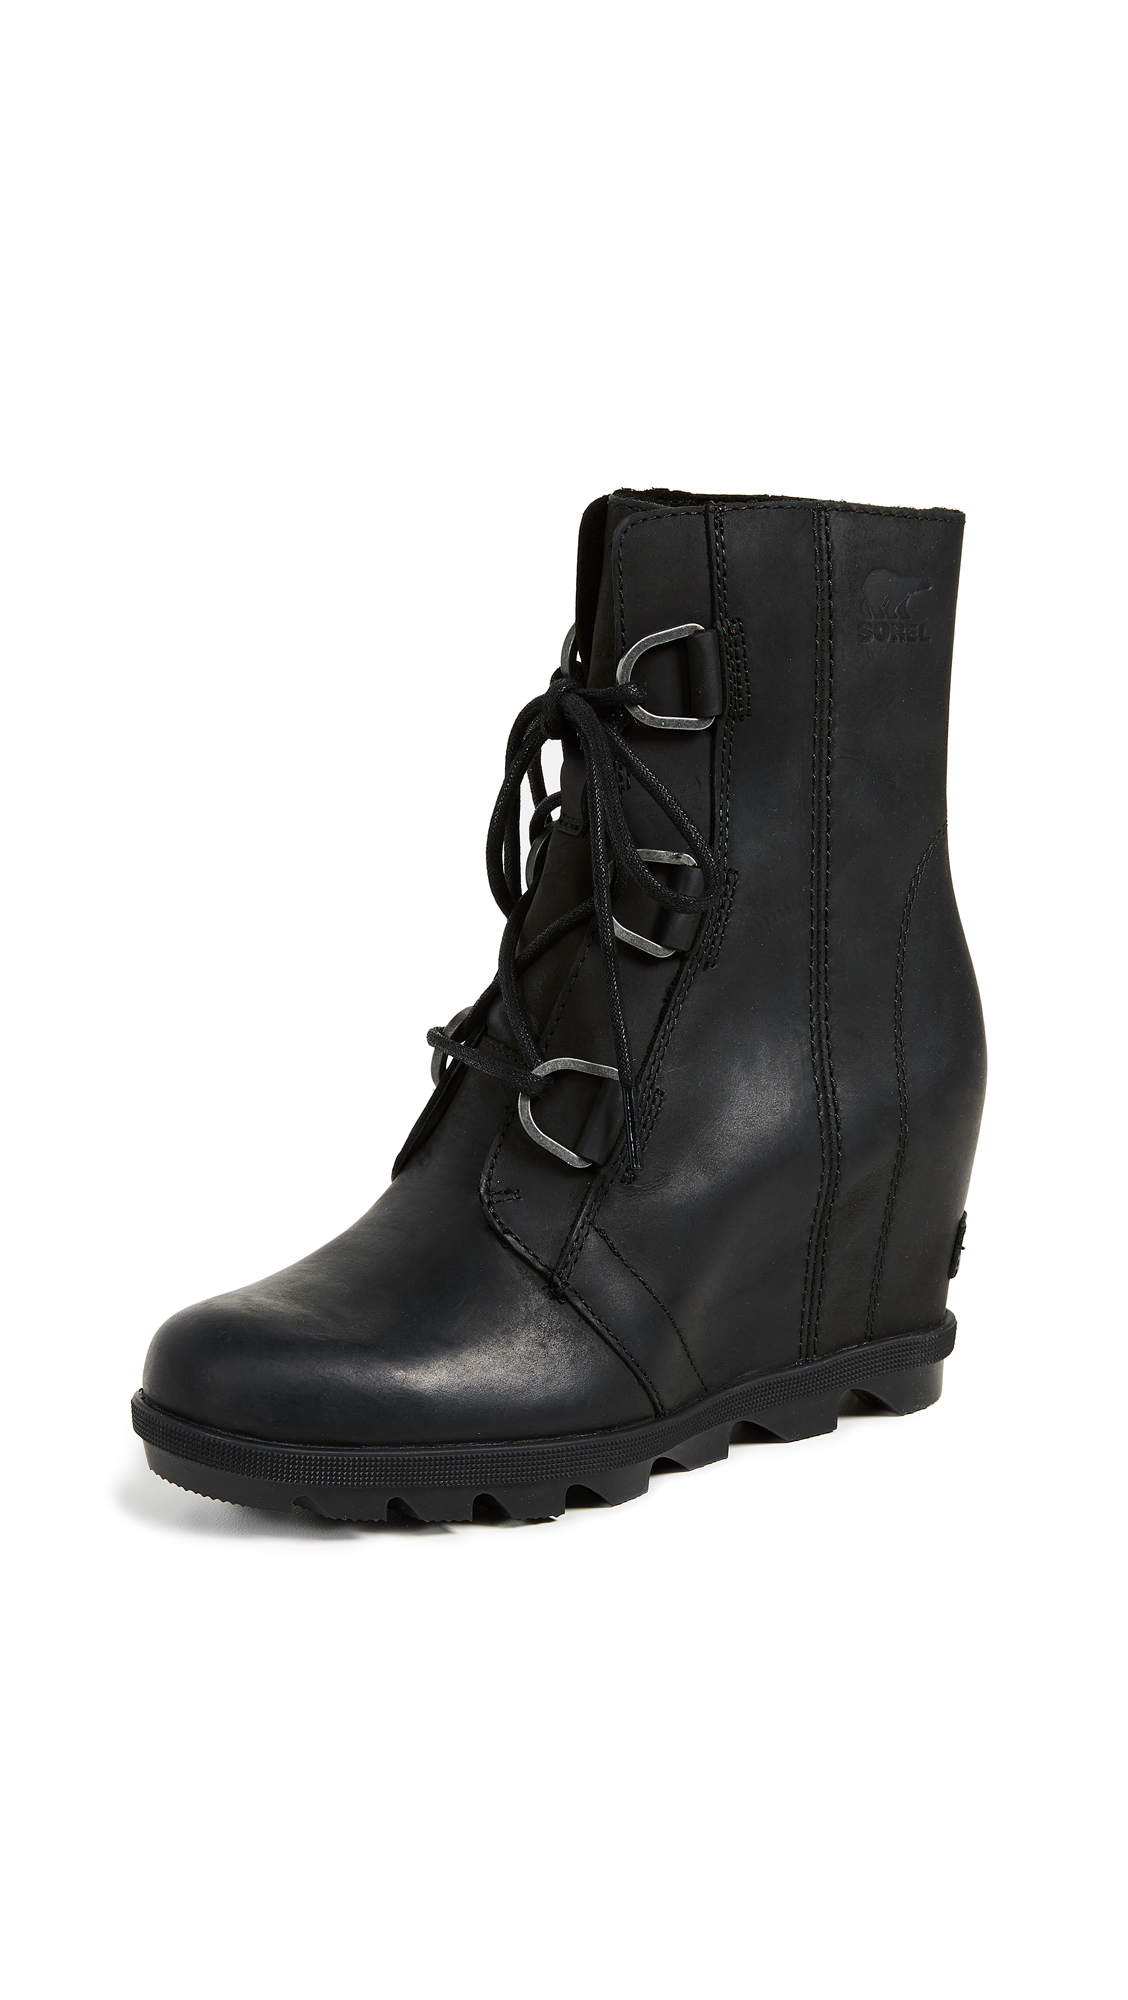 Sorel Joan of Arctic Wedge II Boots - 30% Off Sale